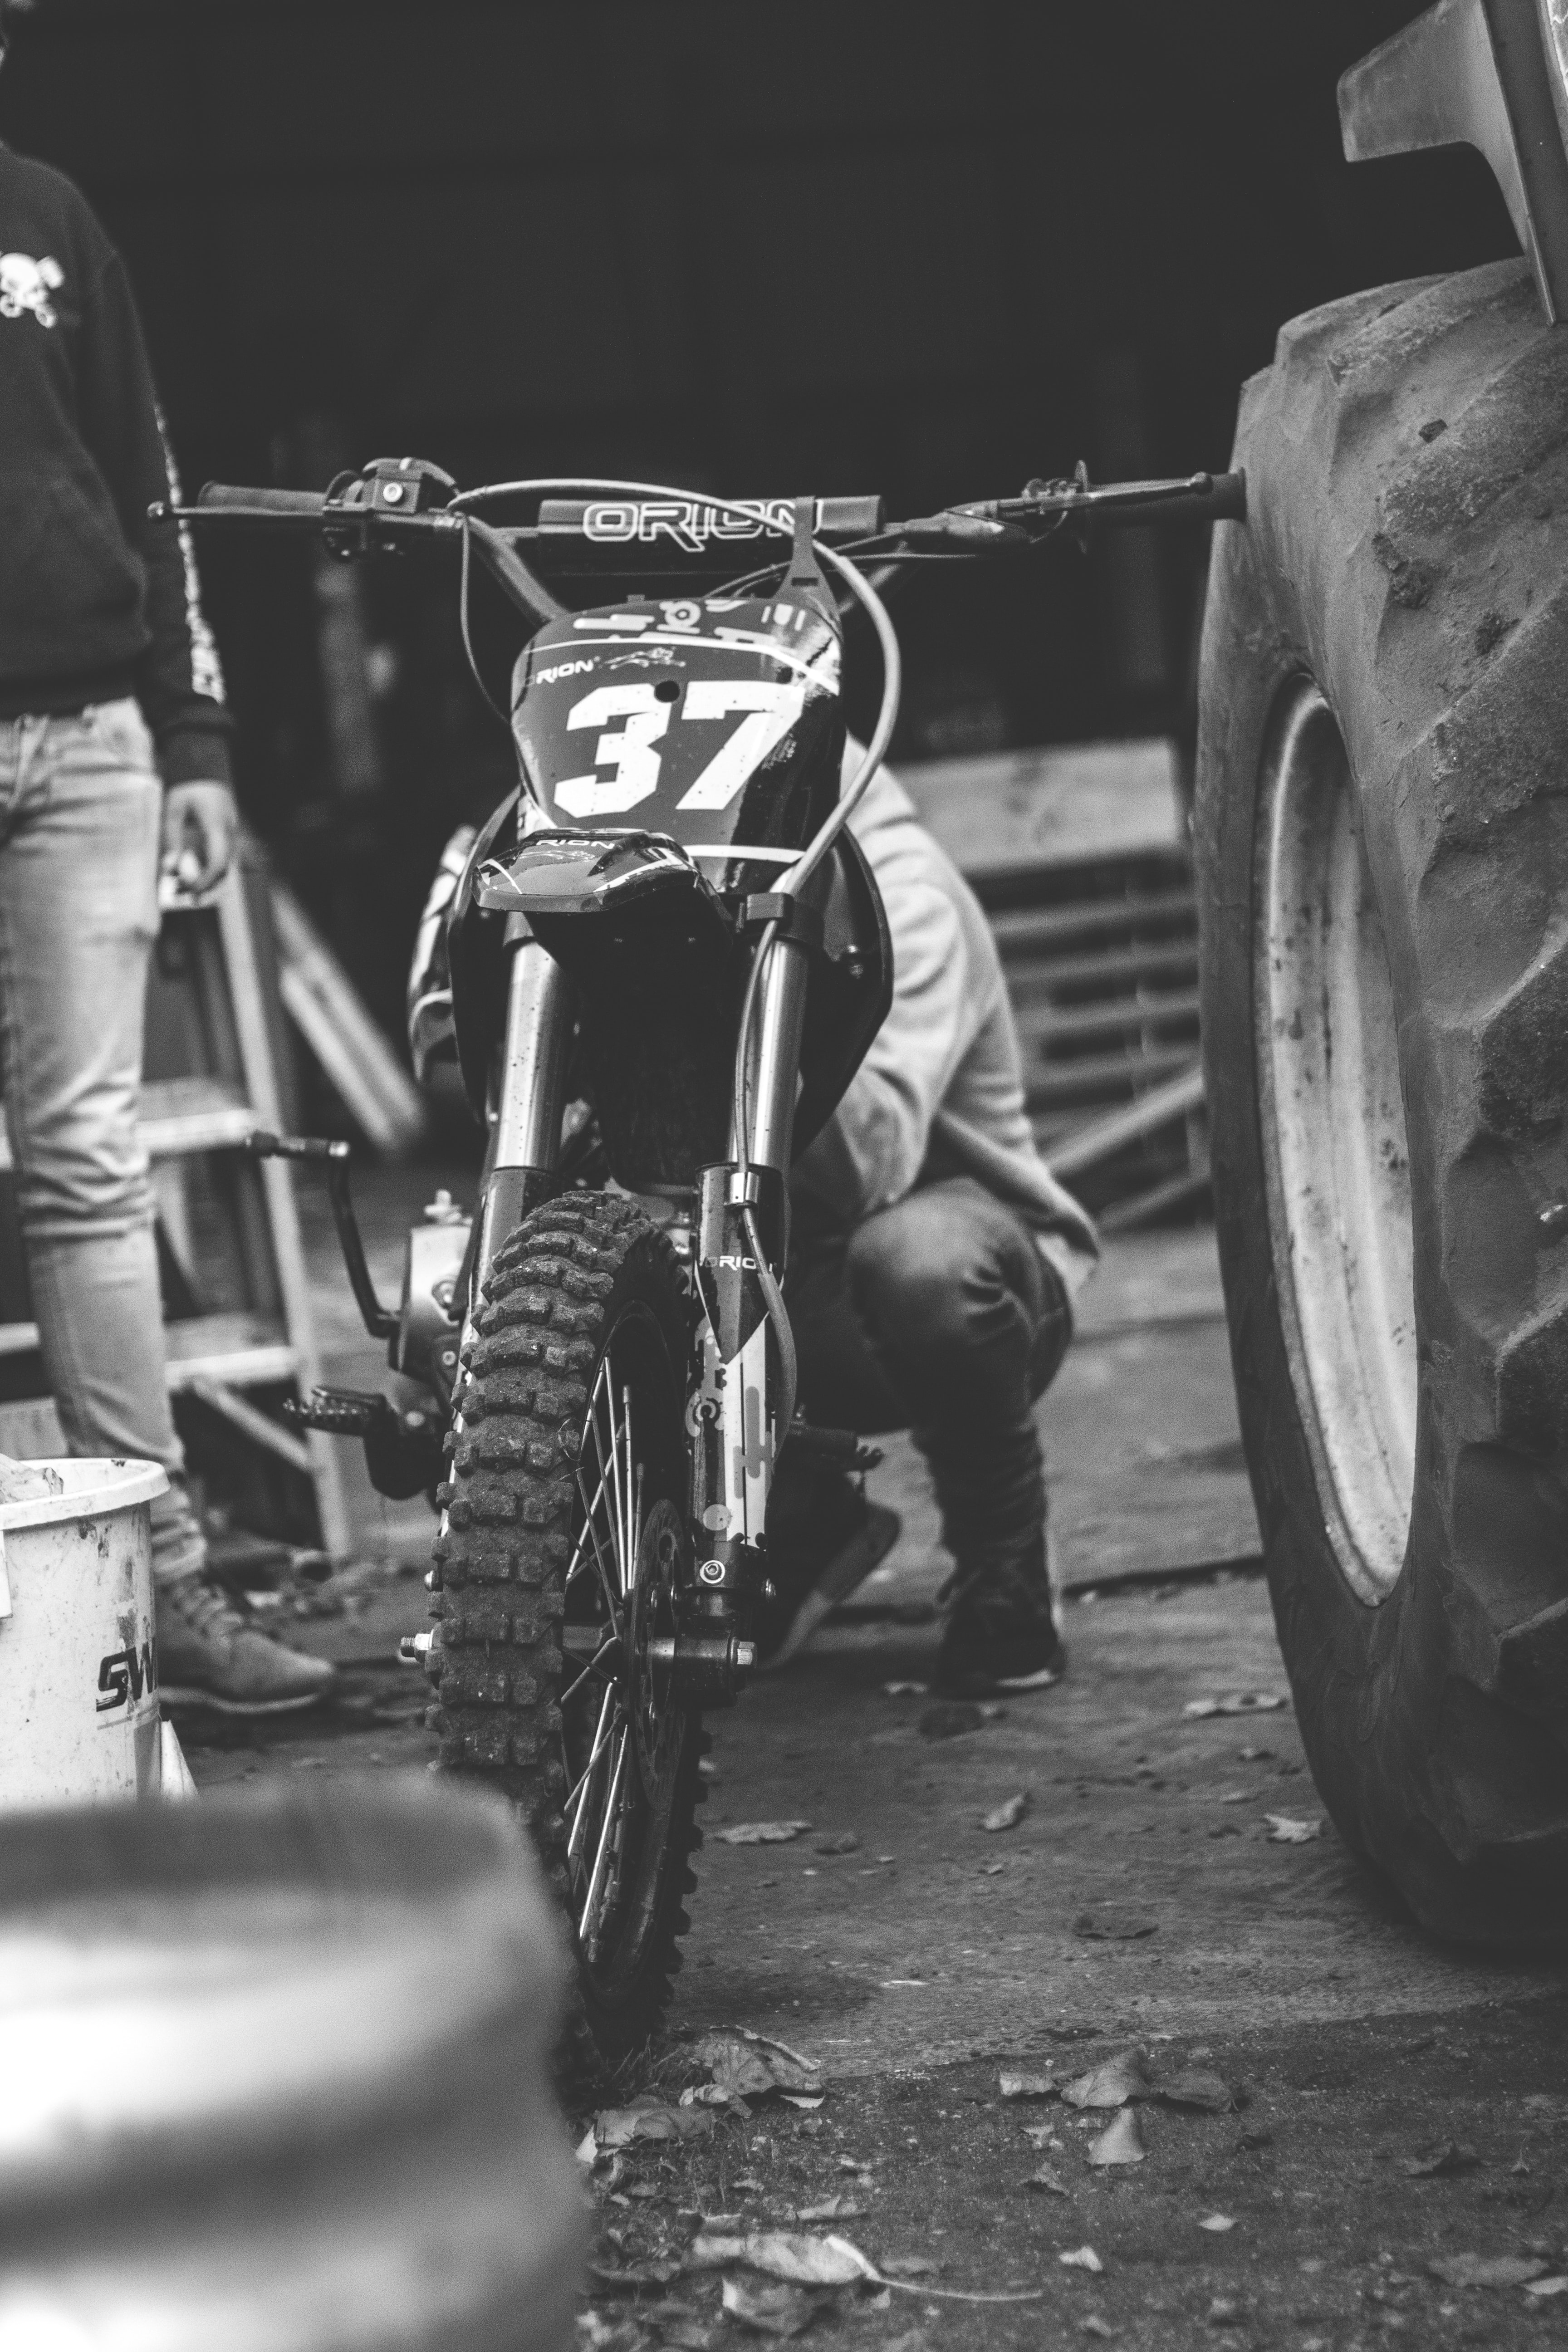 grayscale photo of person behind motocross dirt bike